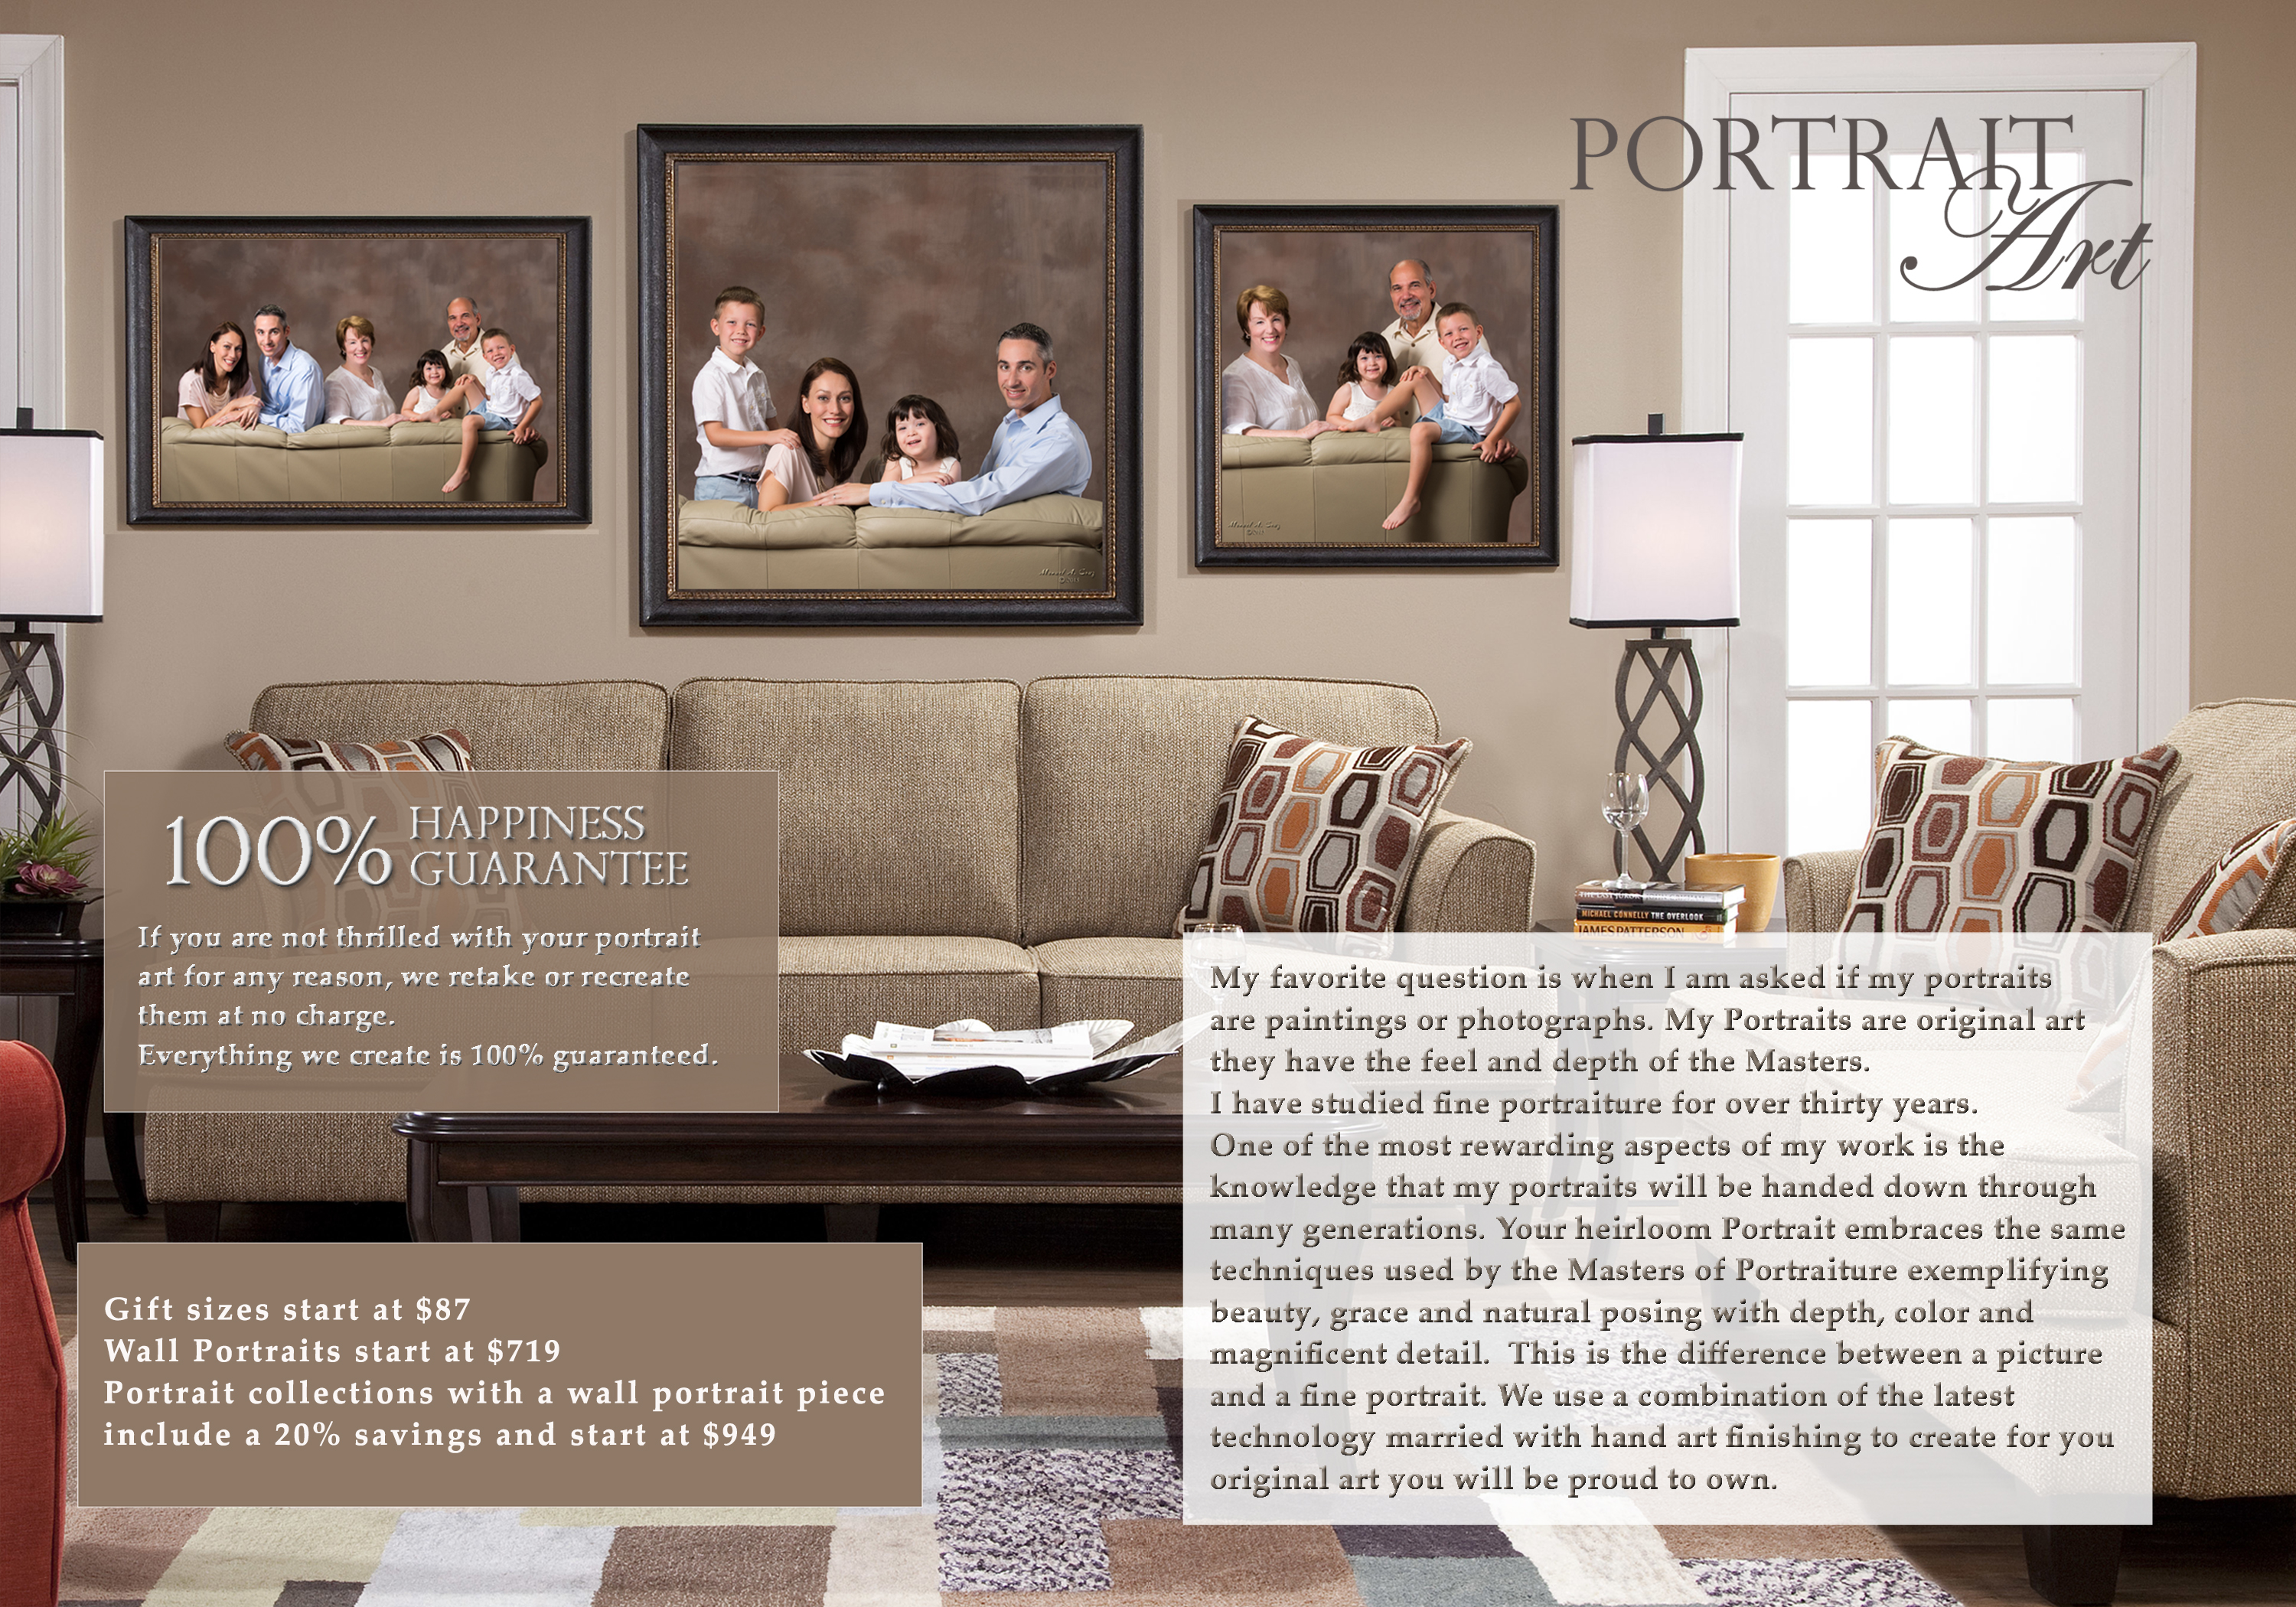 Portrait Guide Family Portrait Pricing!